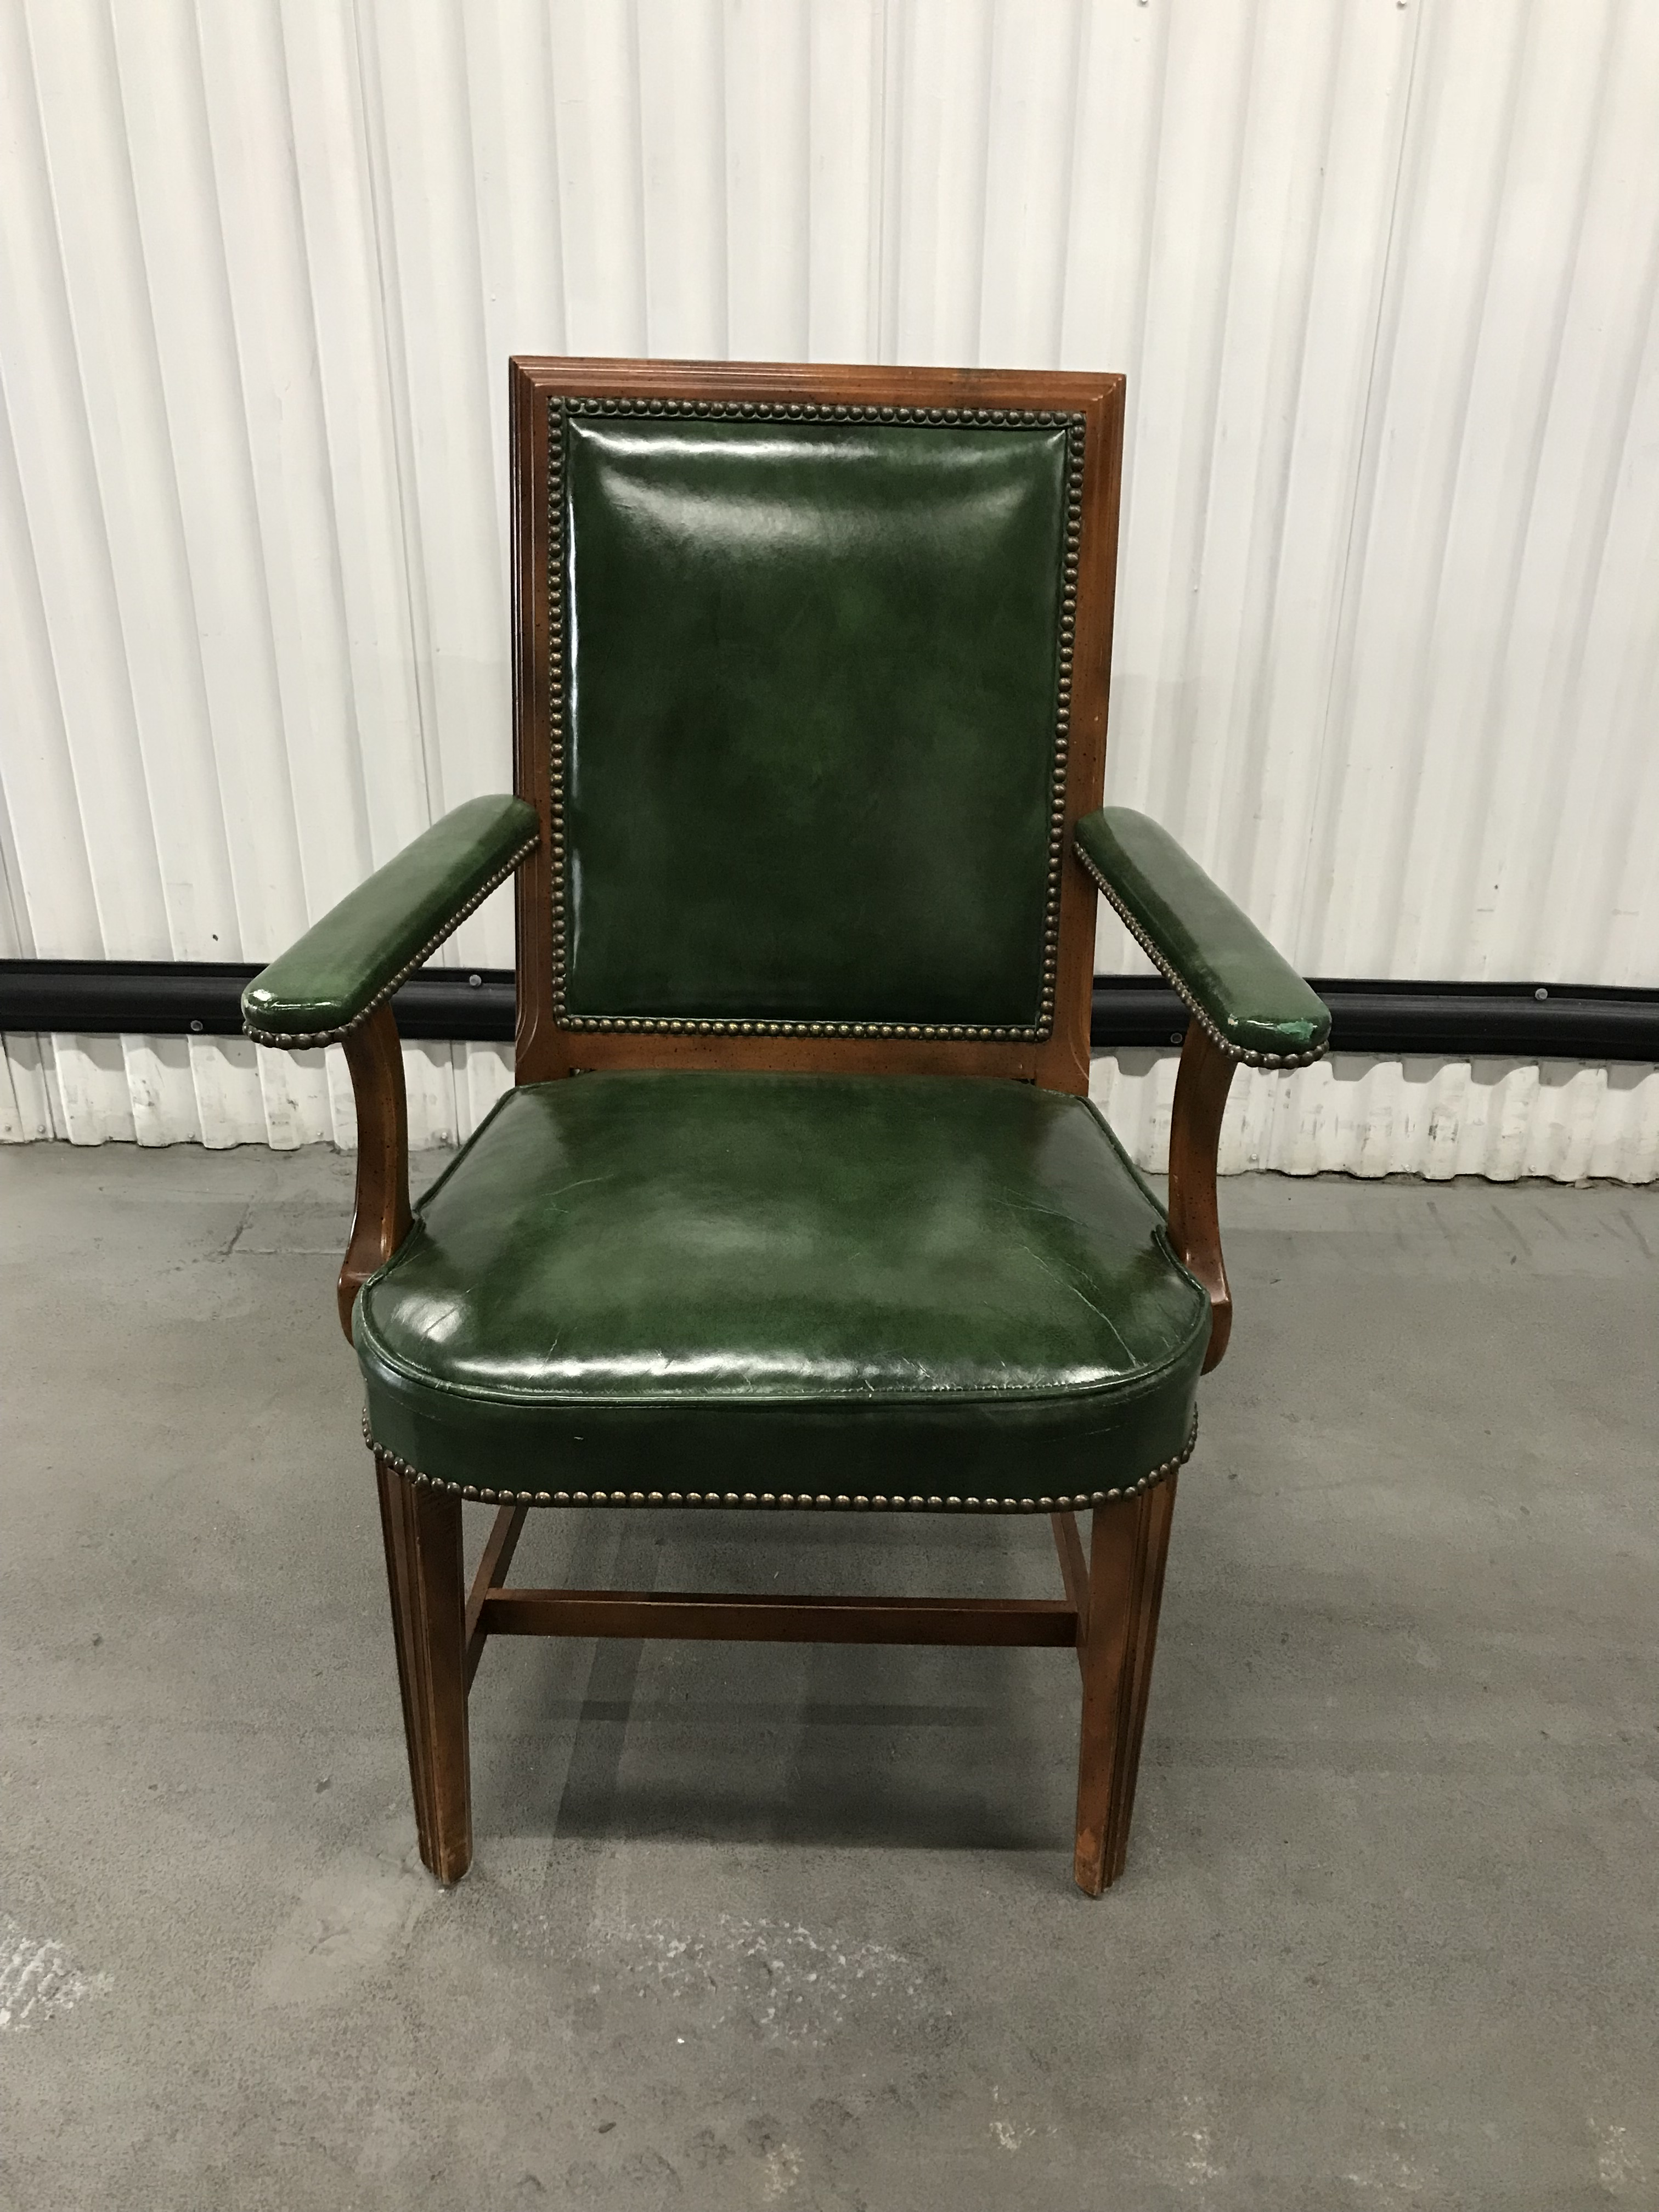 Dead sexy glossy leather on mid-century wood frame accented with a zillion  brass tacks. English Traditional Vintage Kelly Green Leather Armchair